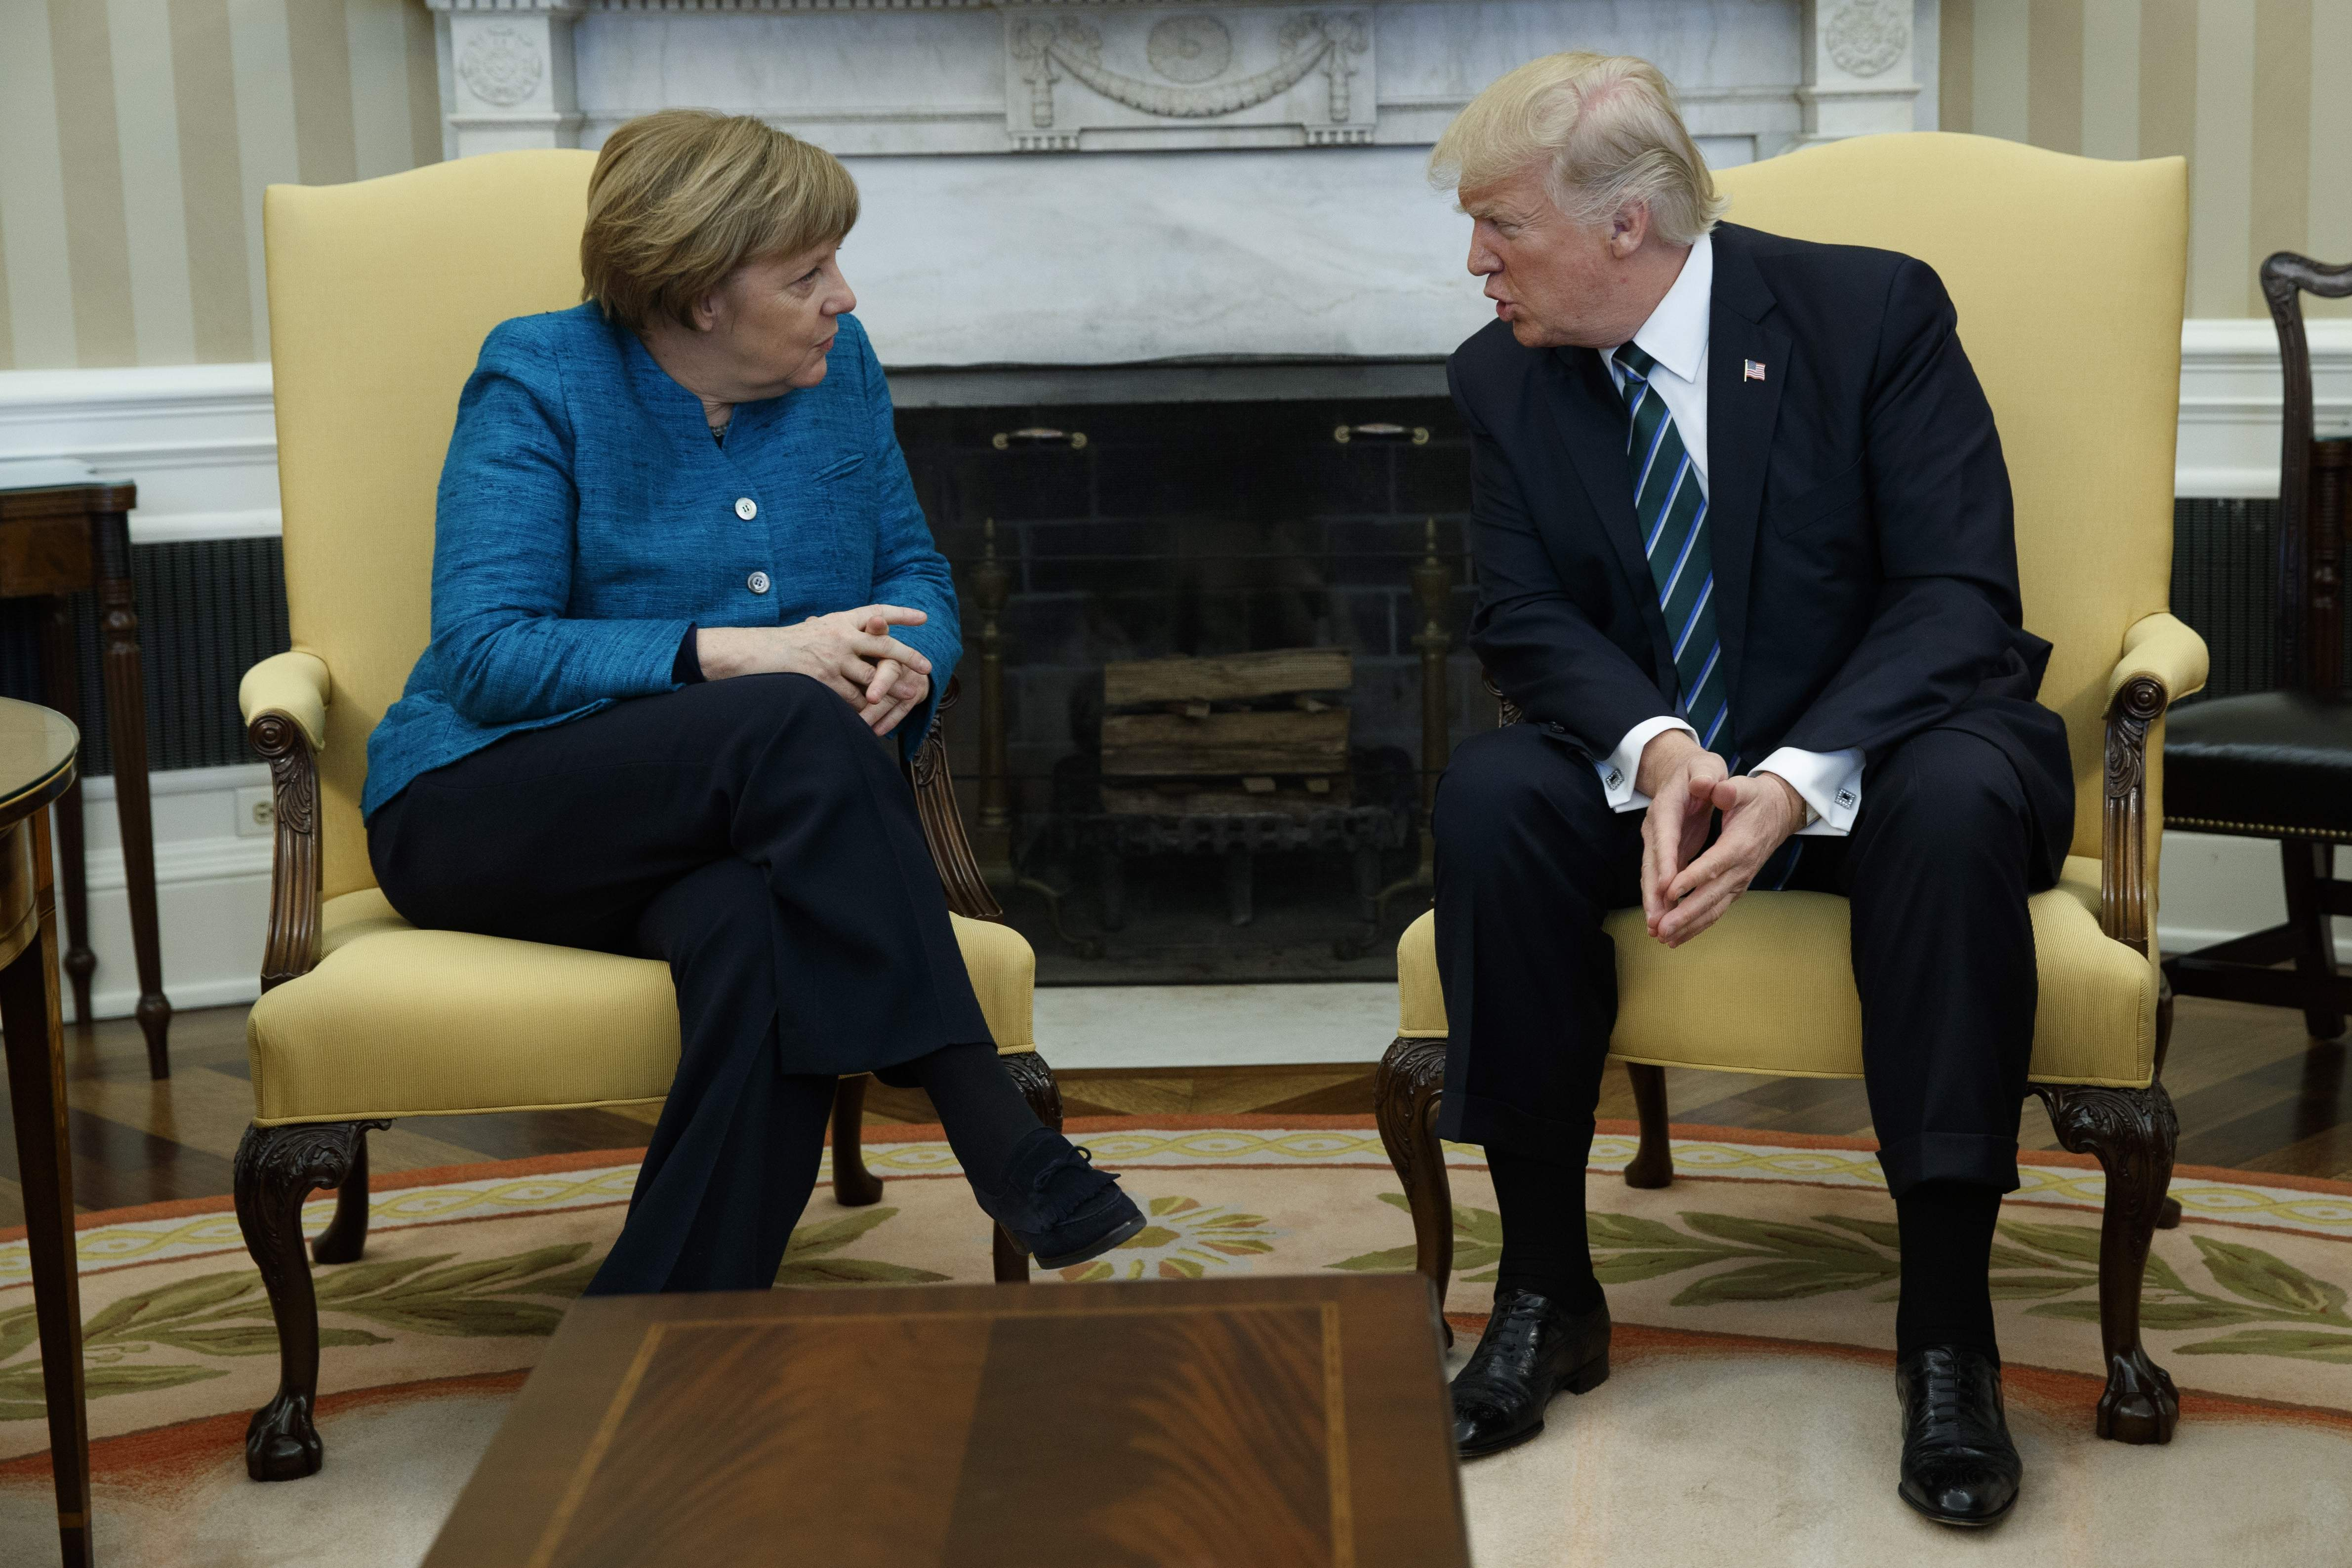 DAY 57 - in this March 17, 2017, file photo, President Donald Trump meets with German Chancellor Angela Merkel in the Oval Office of the White House in Washington. (AP Photo/Evan Vucci, File)